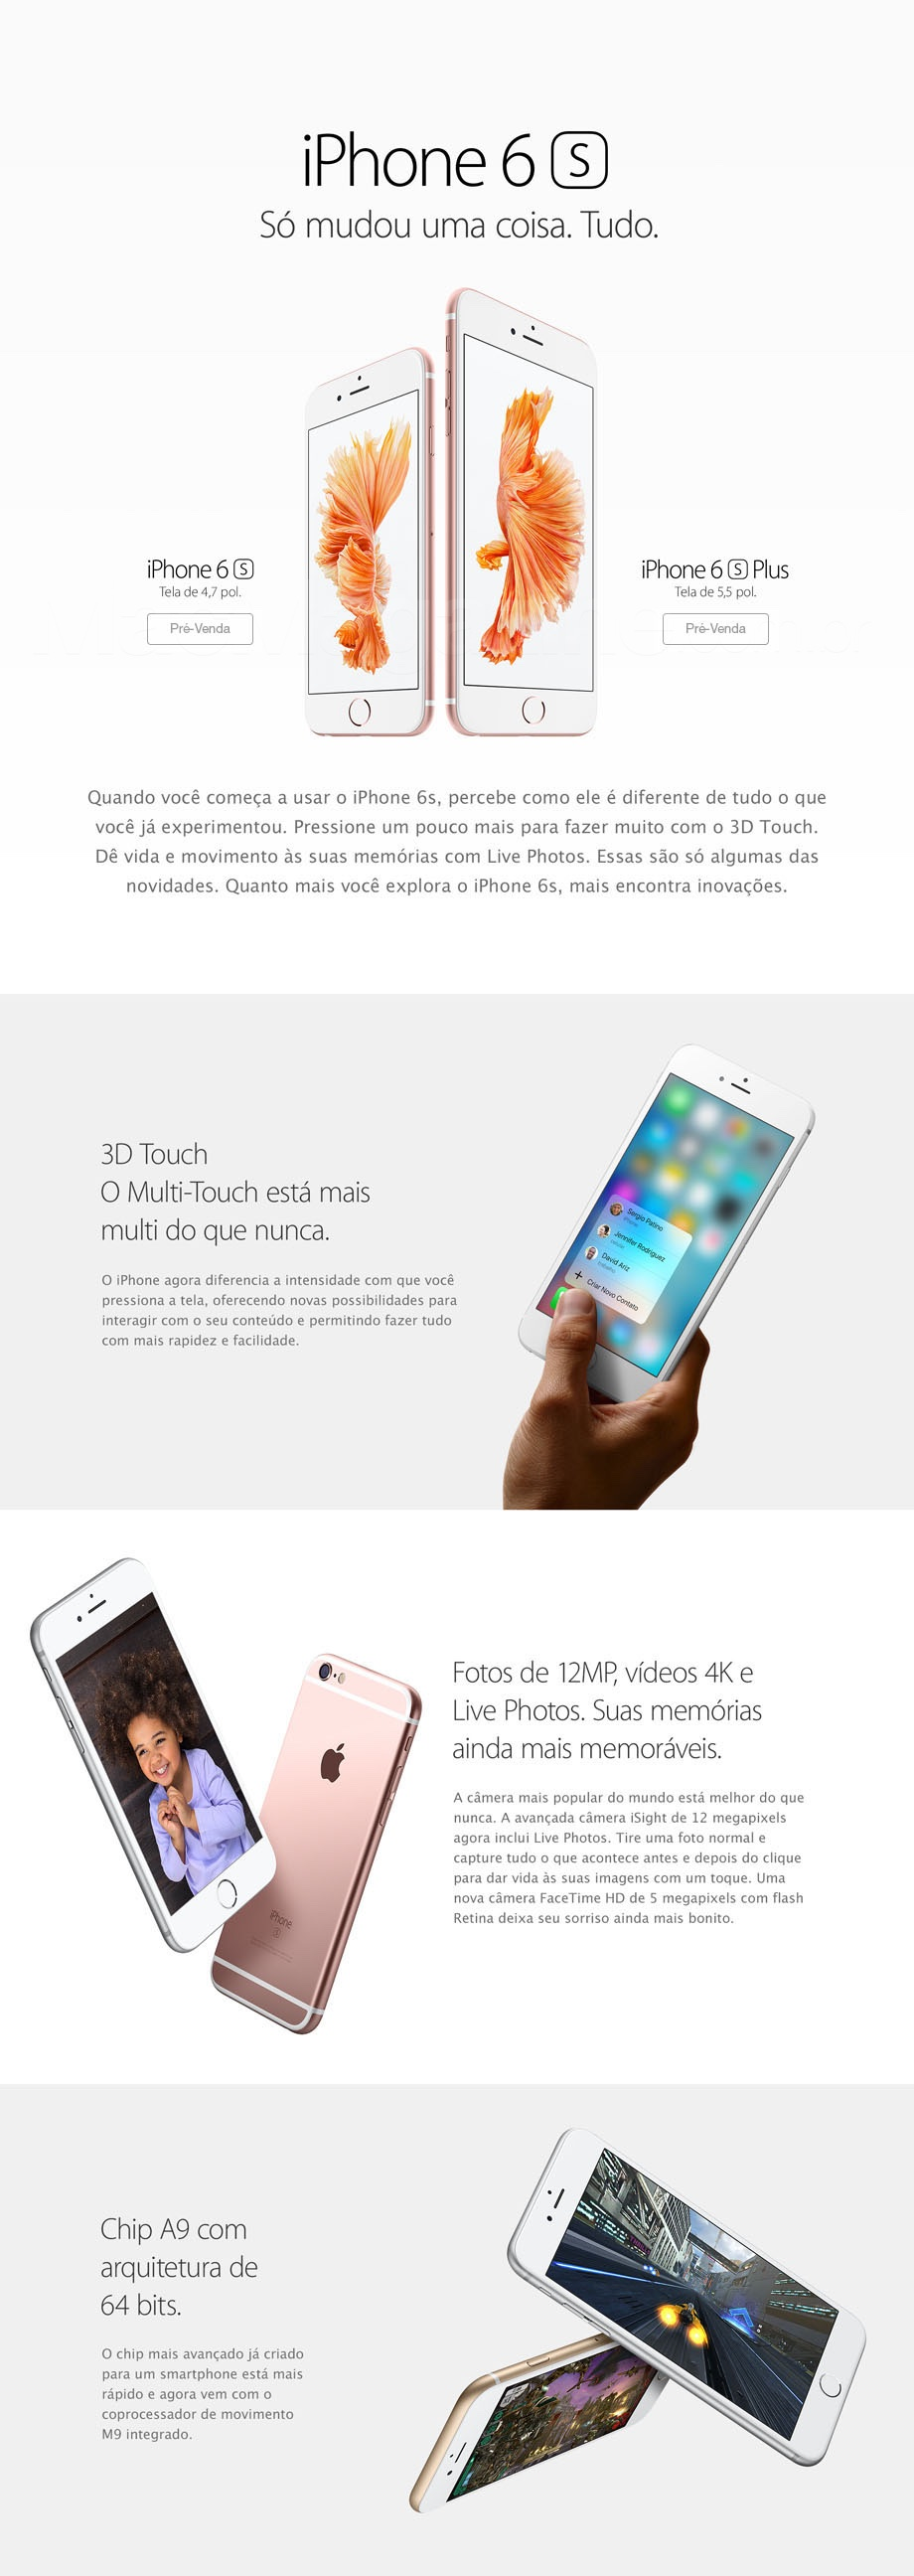 Infográfico do iPhone 6s